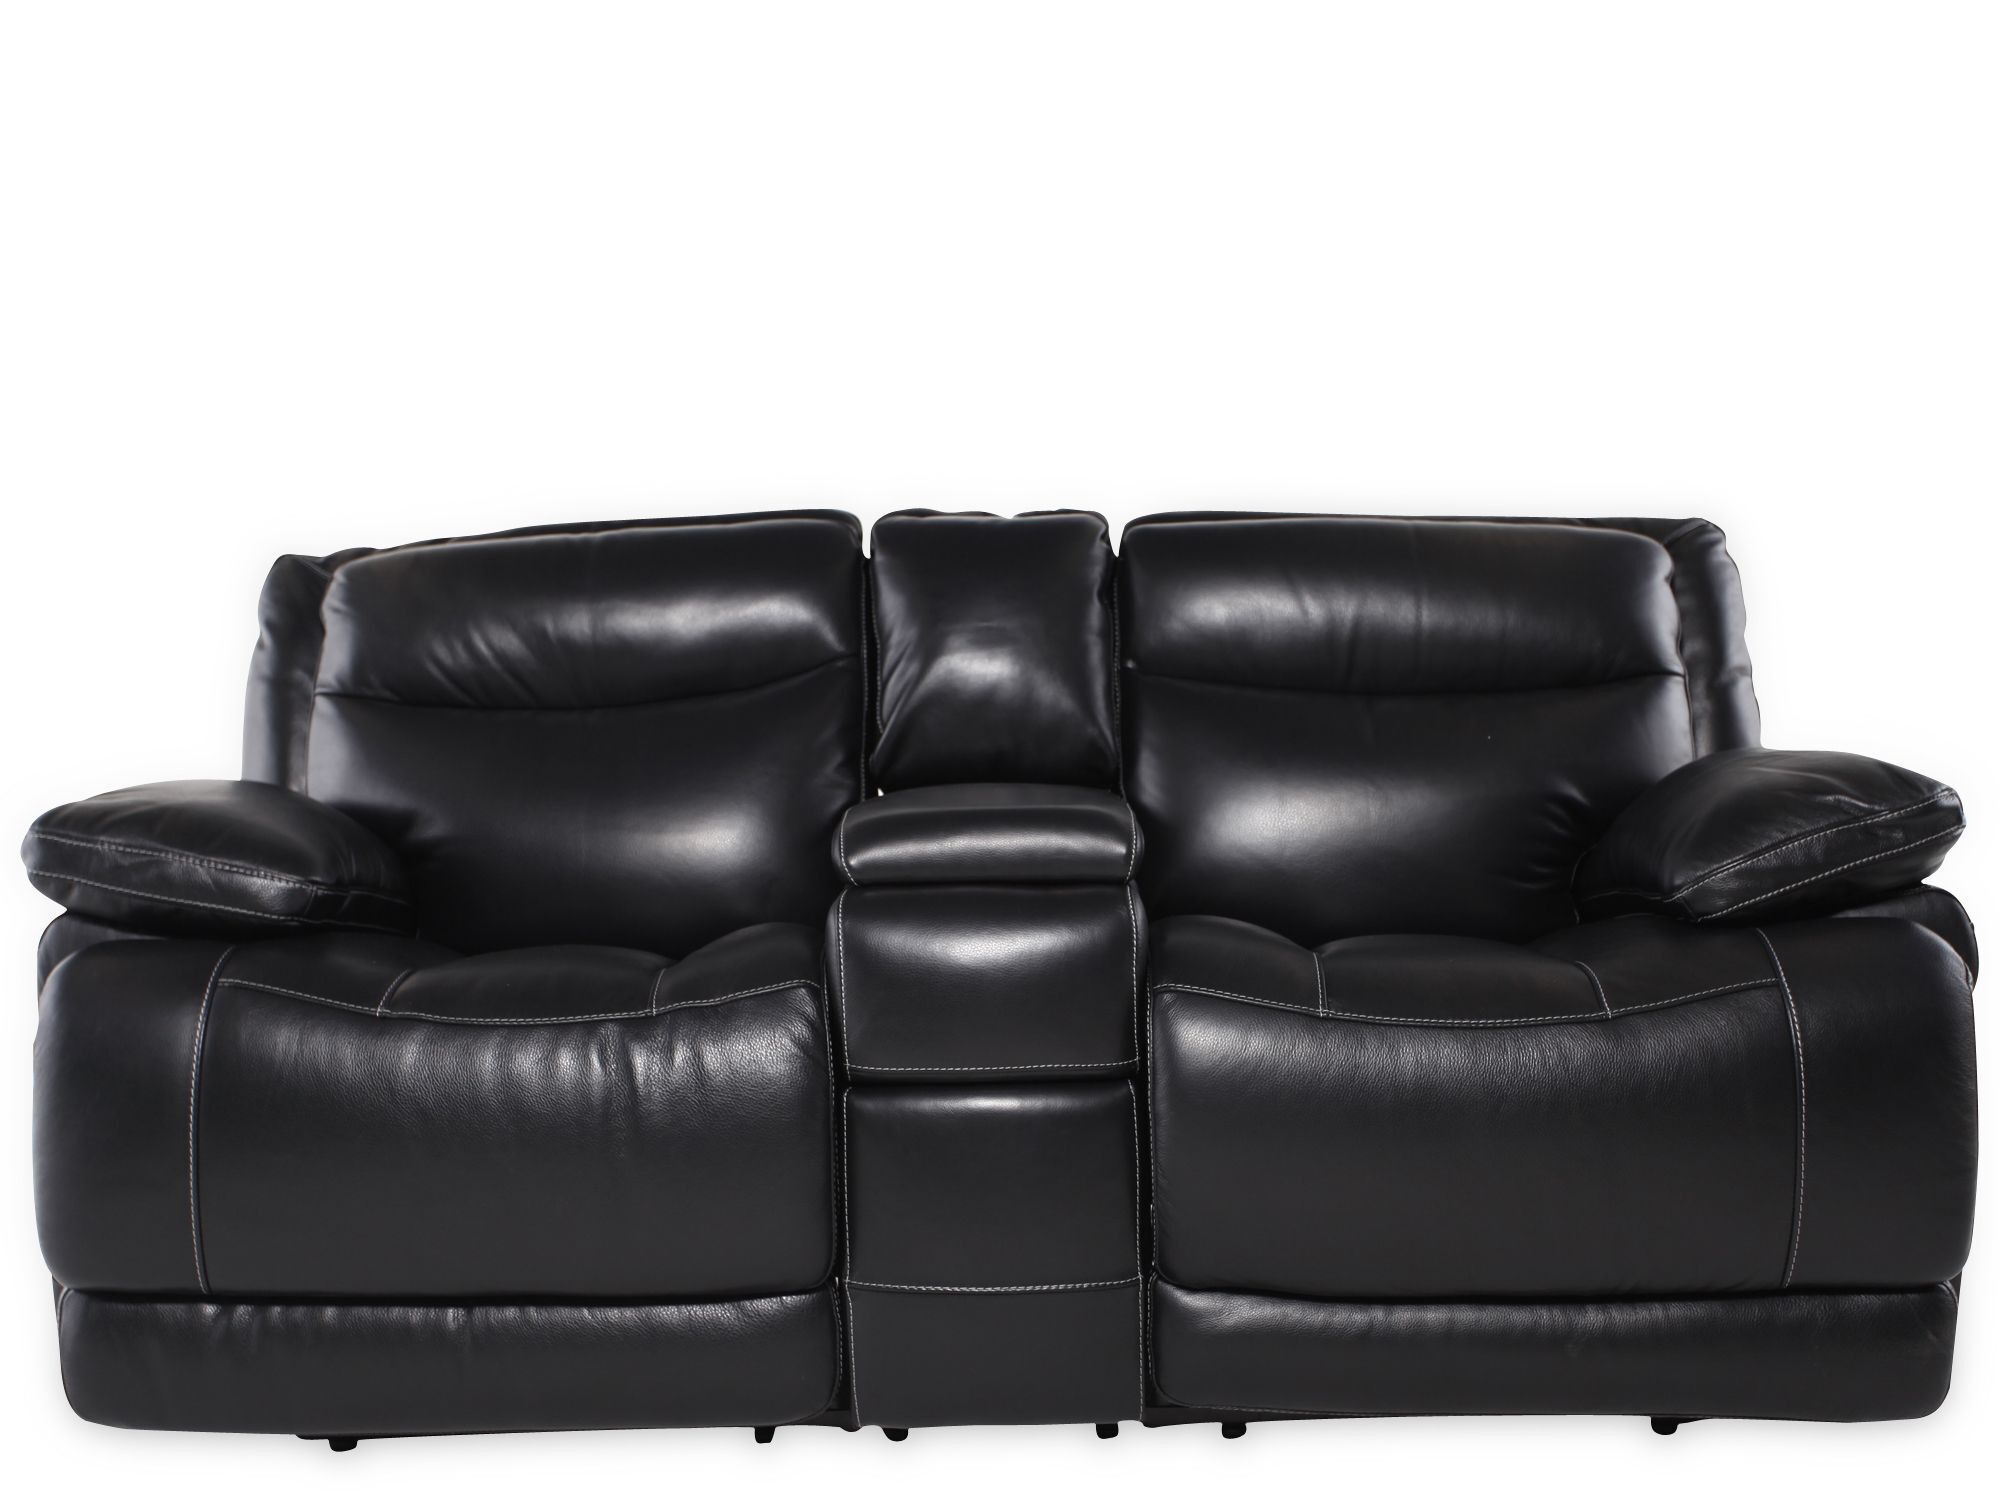 Simon Li Leather Shining Tips Midnight Power Loveseat with Console  sc 1 st  Mathis Brothers & Simon Li Leather Shining Tips Midnight Power Loveseat with Console ... islam-shia.org